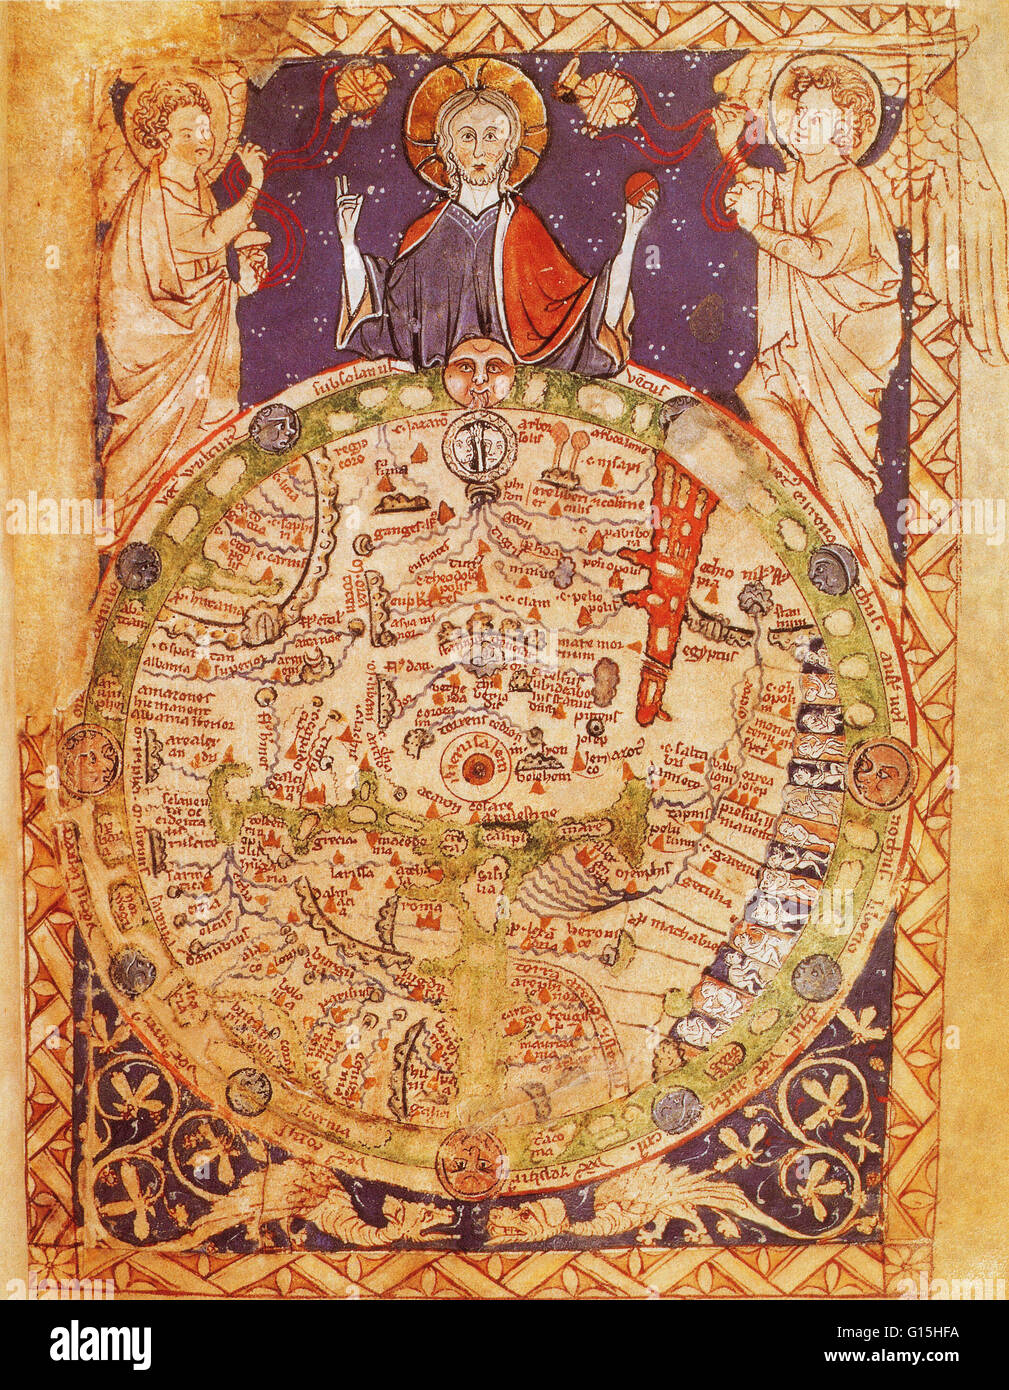 Psalter world map, created around 1250. This medieval world map